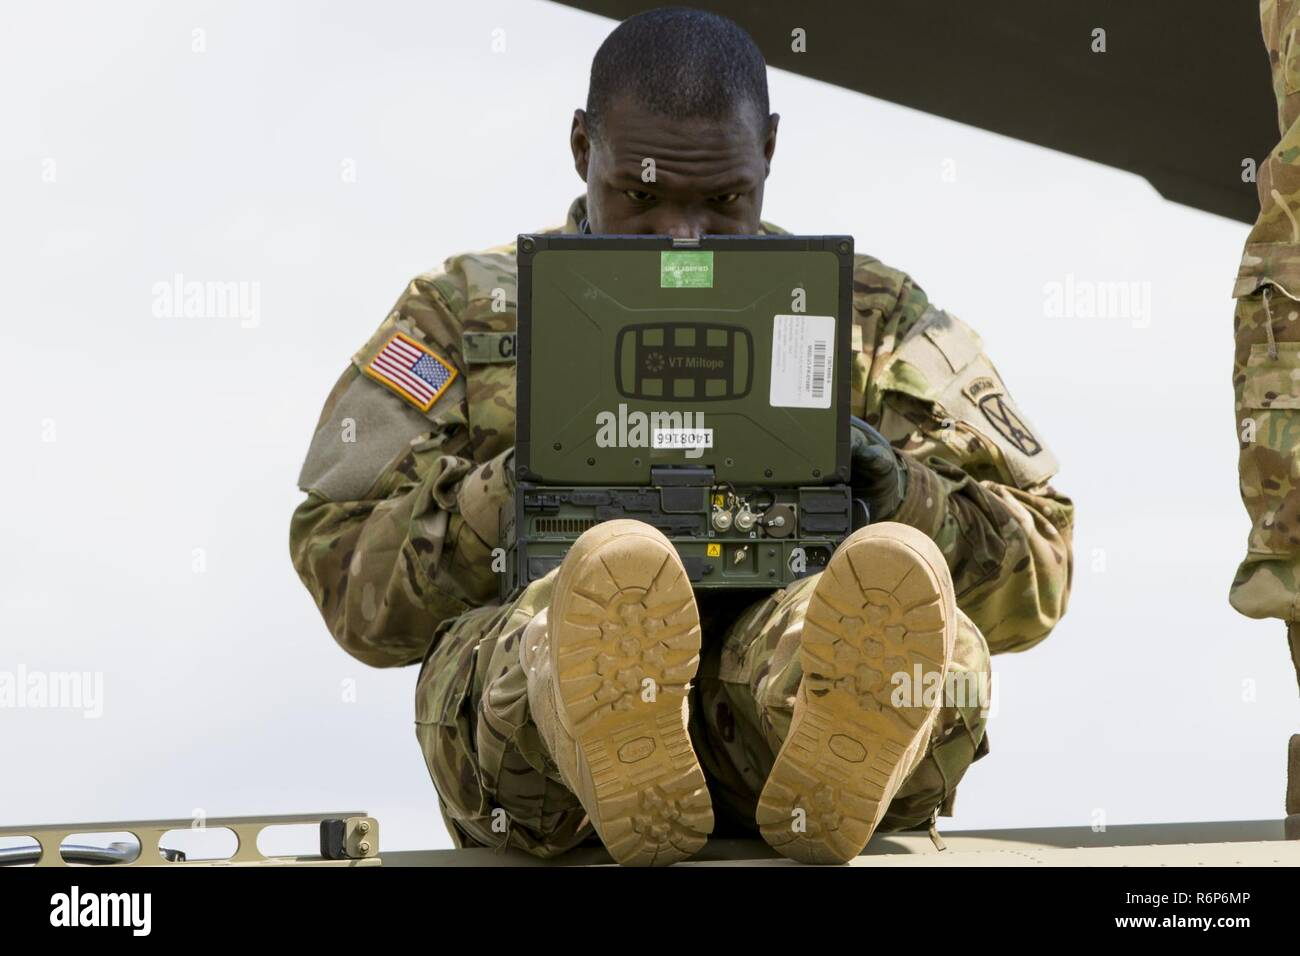 A Soldier from D Company, 3-10 General Support Aviation Battalion, refers to repair procedures during the replacement of the aft yoke in a CH-47 Chinook helicopter at Lielvarde, Latvia, on May 19. The highest ranking member of the team was a specialist; empowering junior leaders is imperative to be successful in the spread-out environment of U.S. Army Europe's Atlantic Resolve mission. - Stock Image